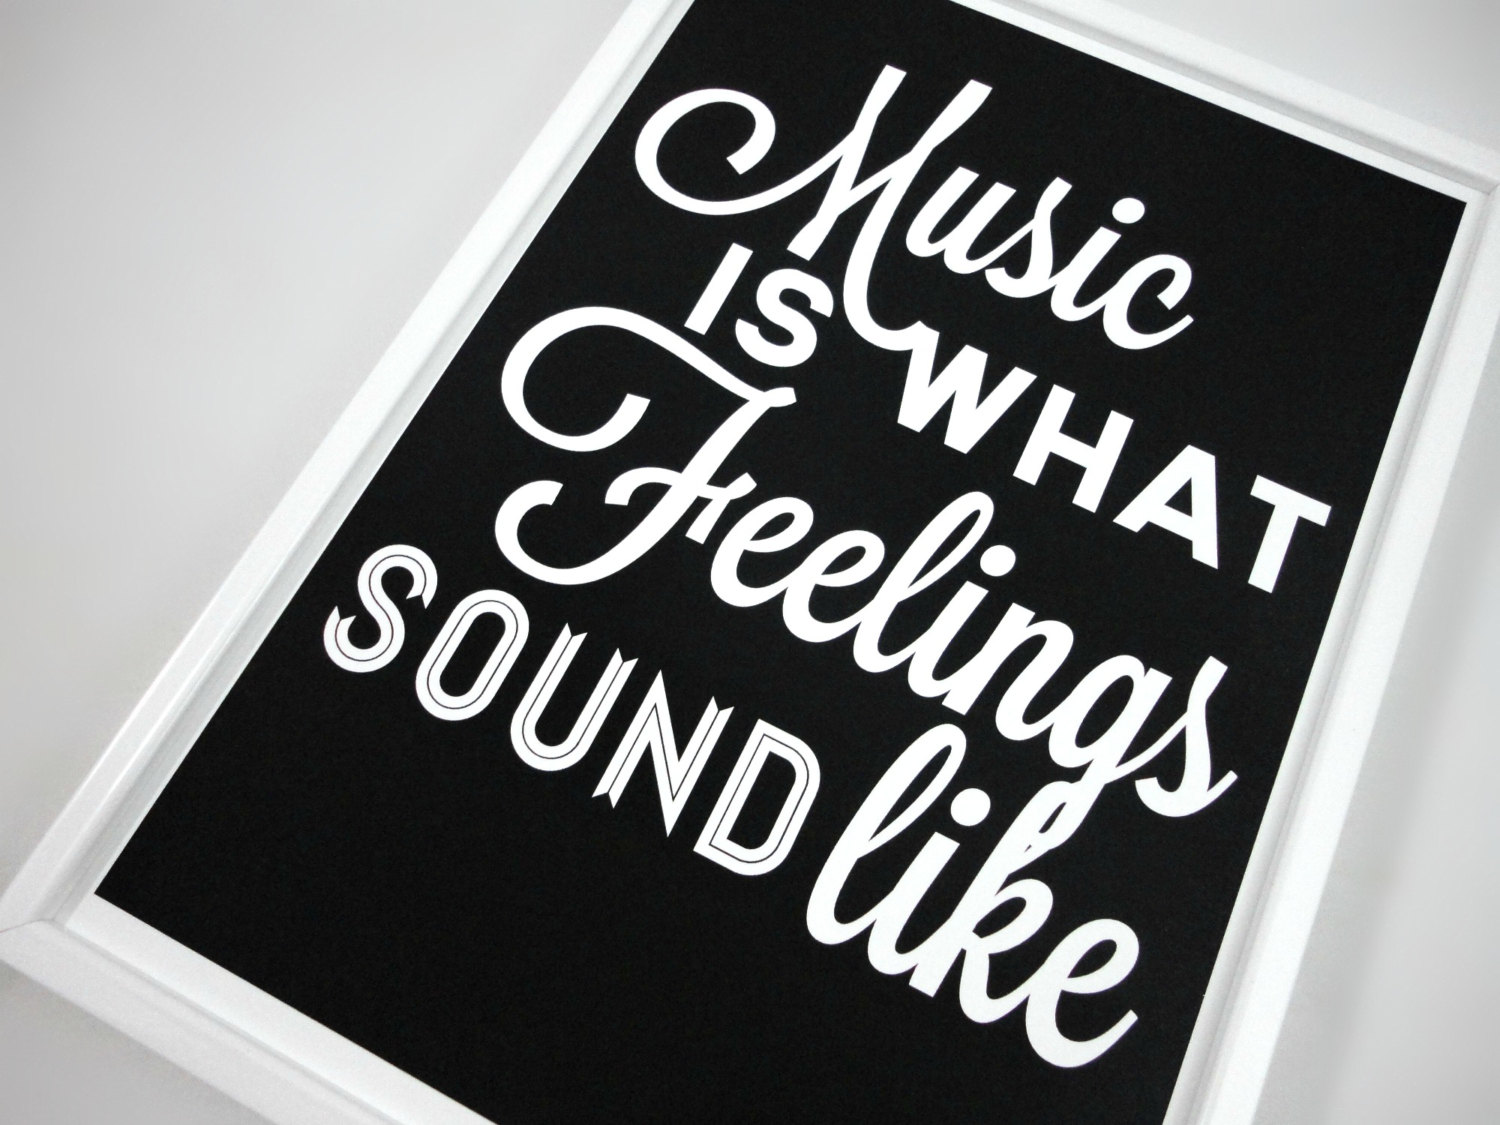 music makes you feel.